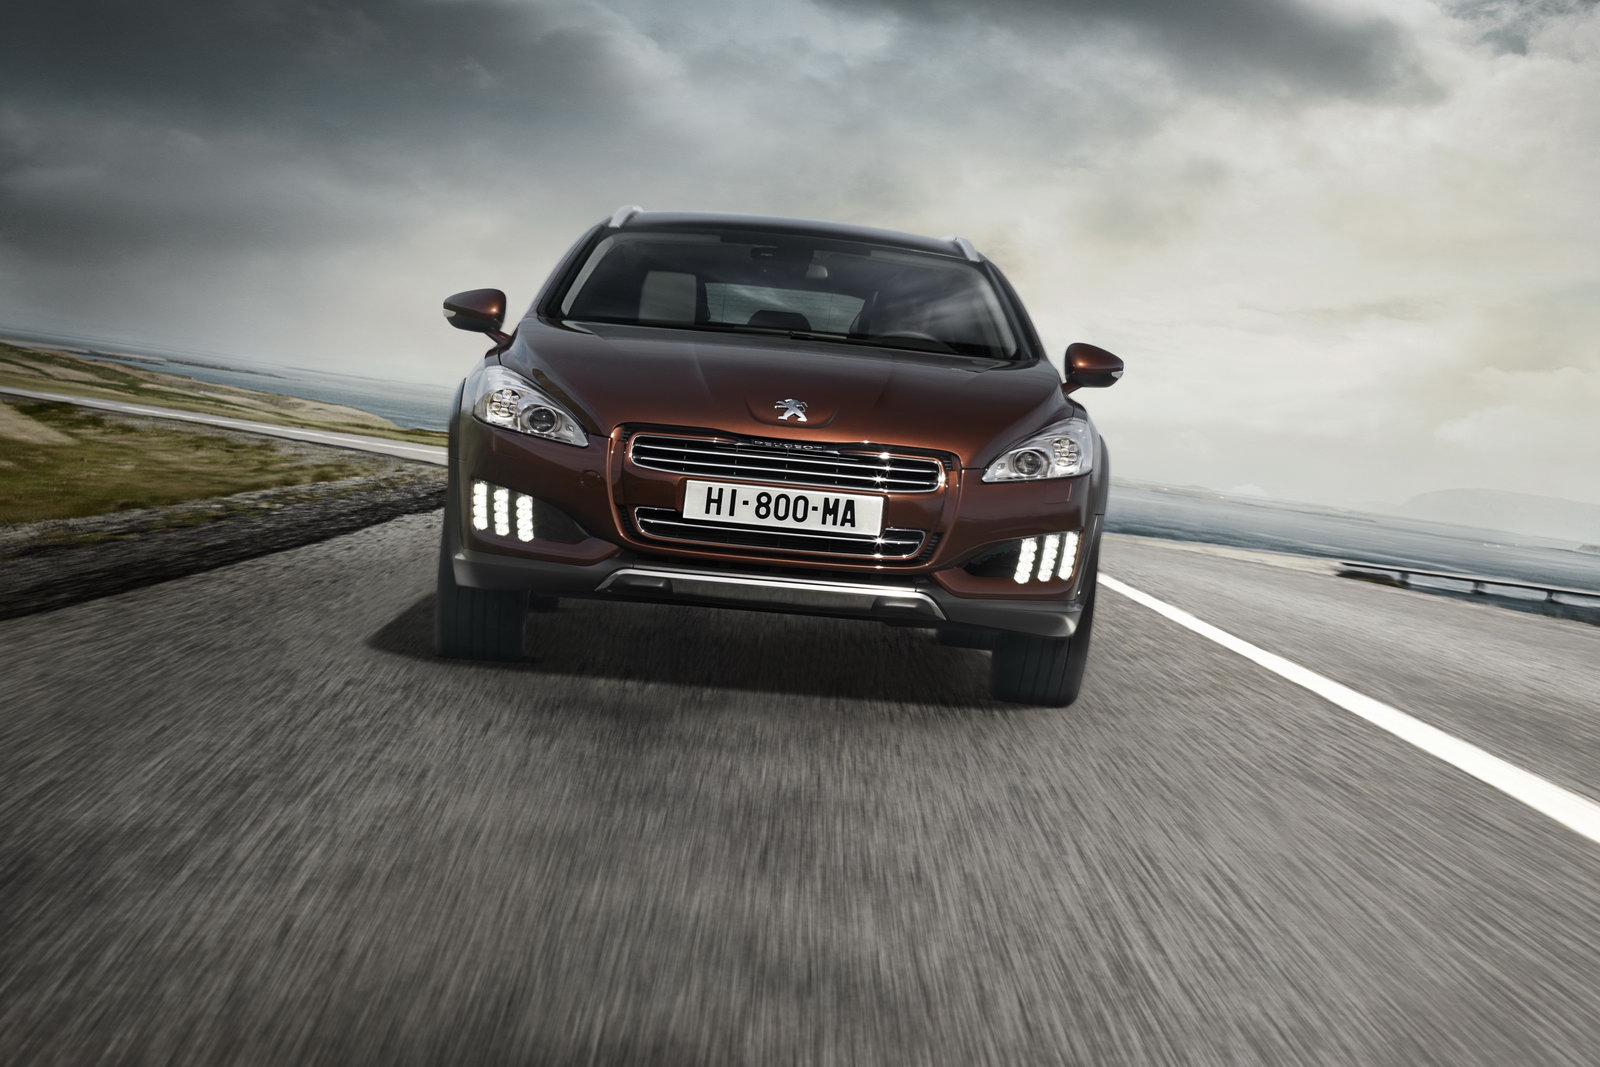 peugeot 508 rxh 2012 will appear at the frankfurt motor show 2011 cartestimony. Black Bedroom Furniture Sets. Home Design Ideas